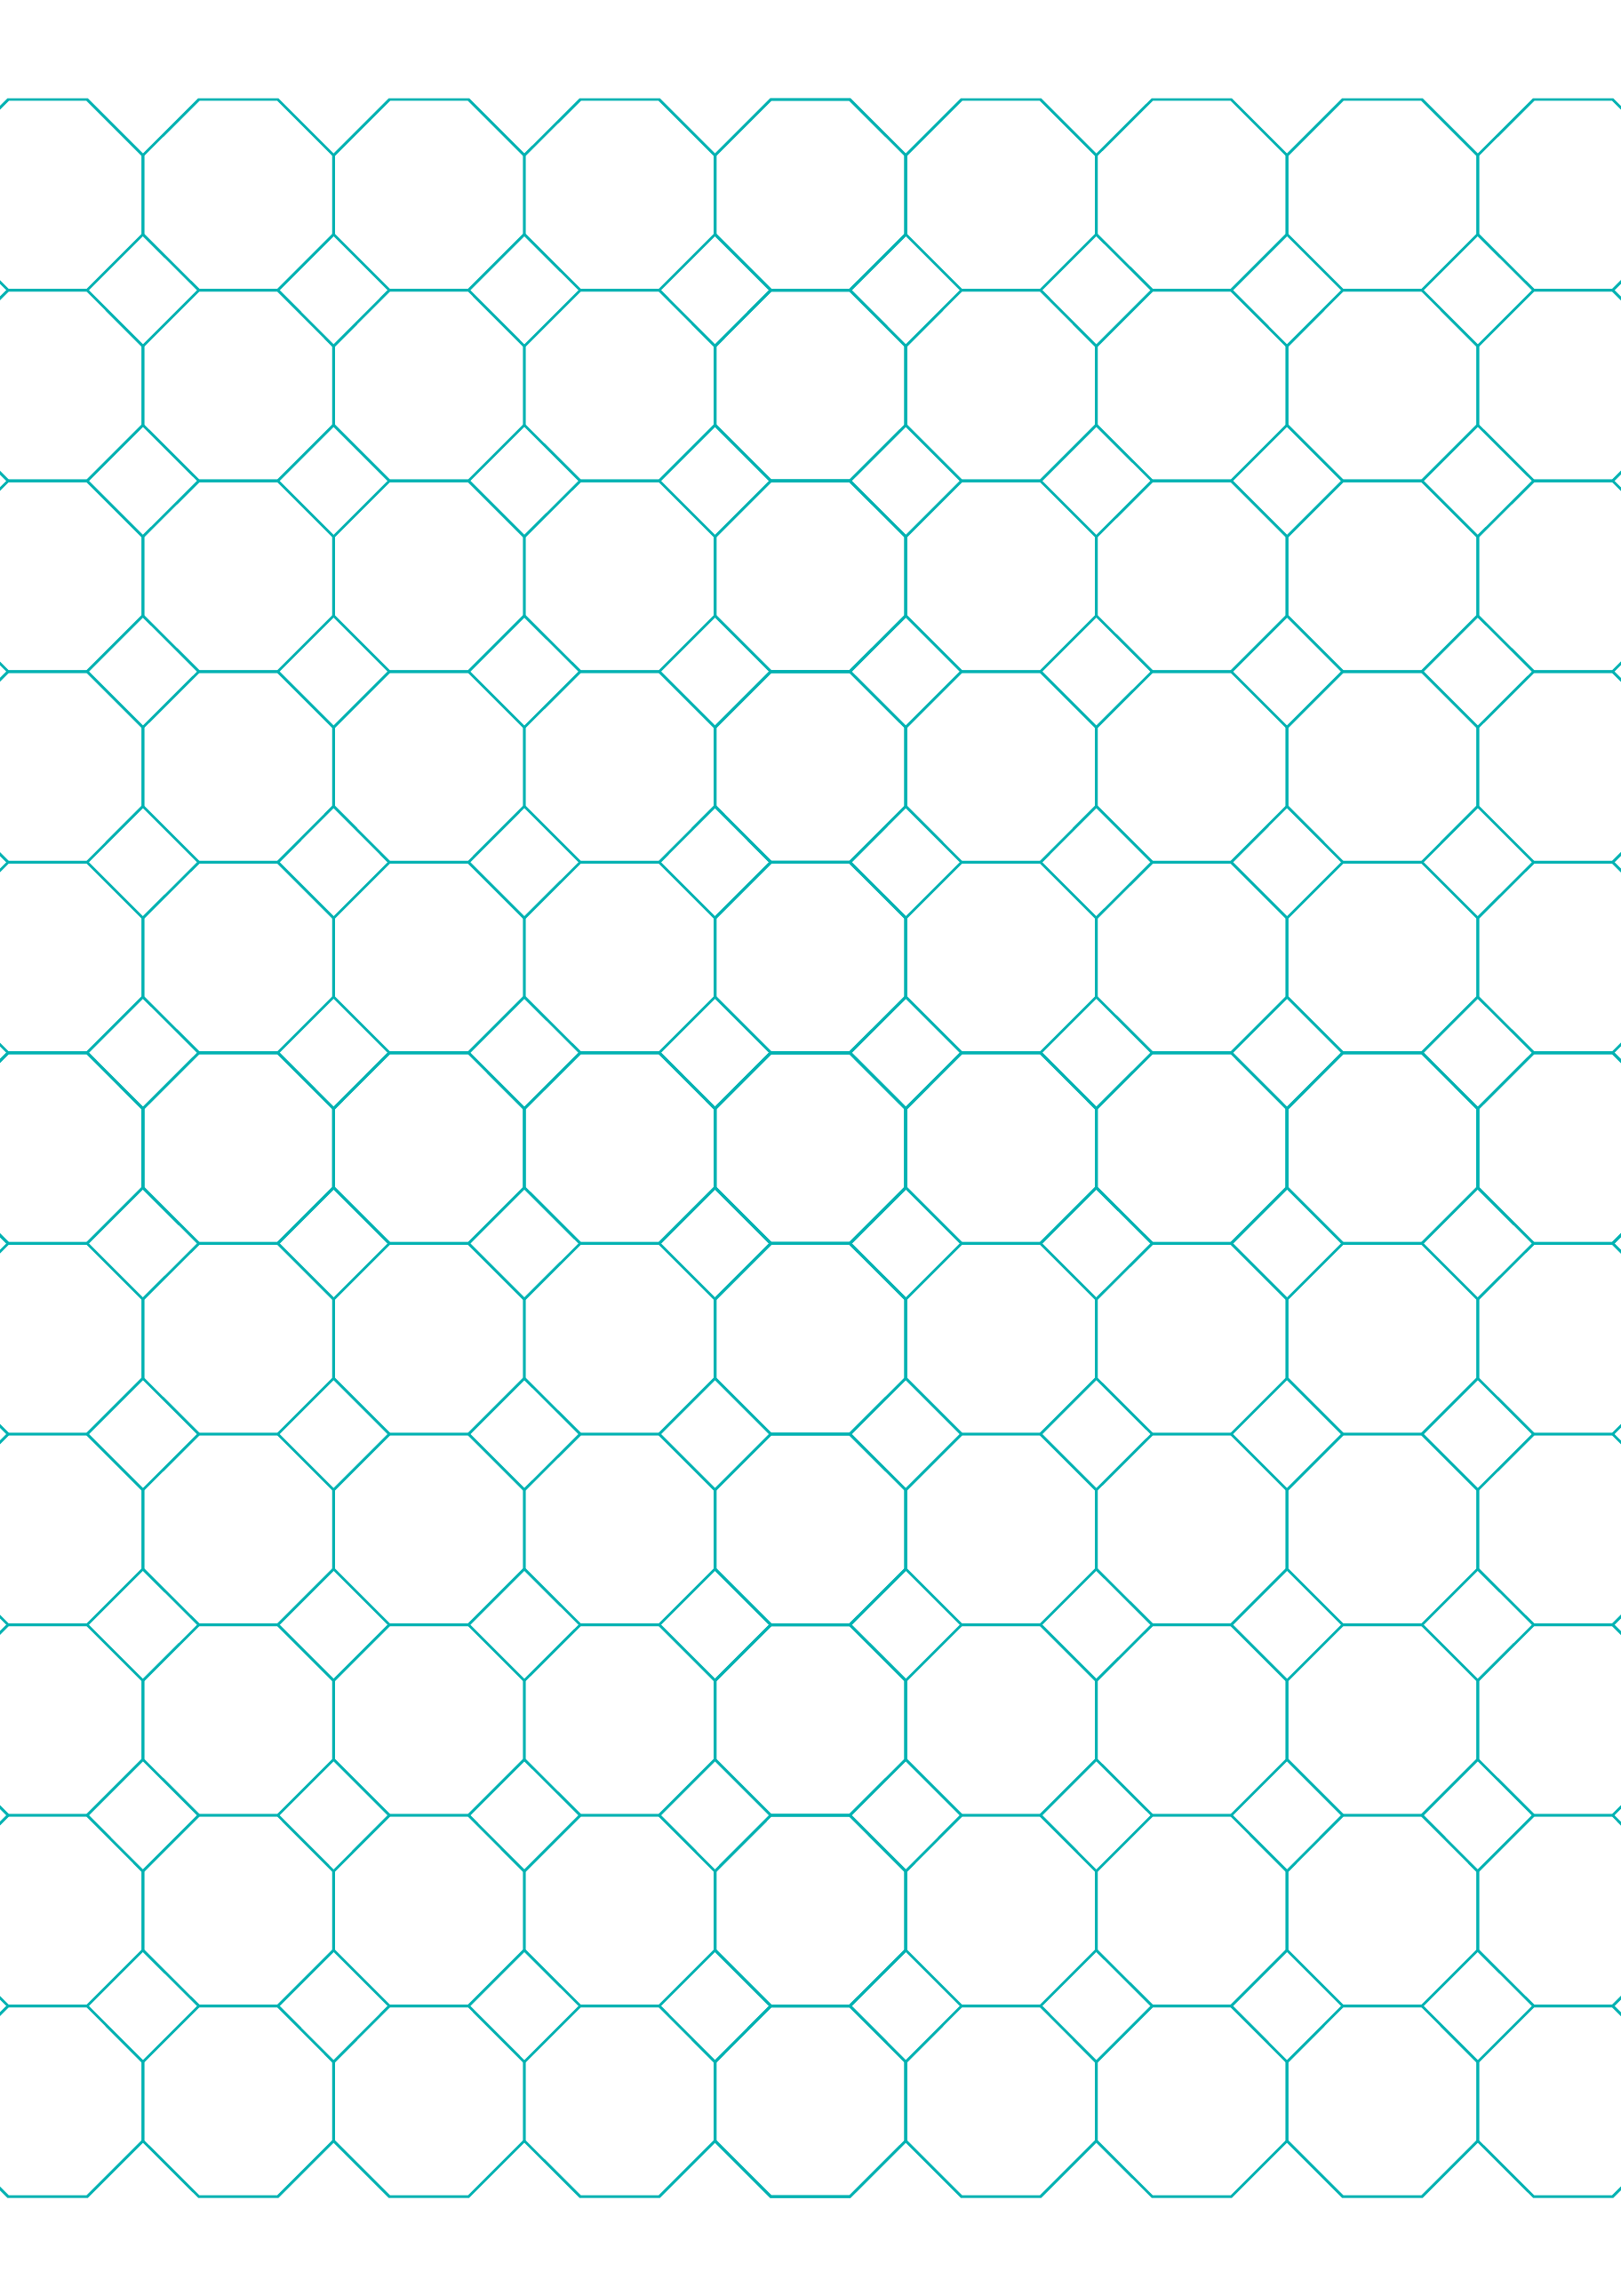 Octagon Graph Paper with 1Inch Spacing on LetterSized Paper Free – Octagon Graph Paper